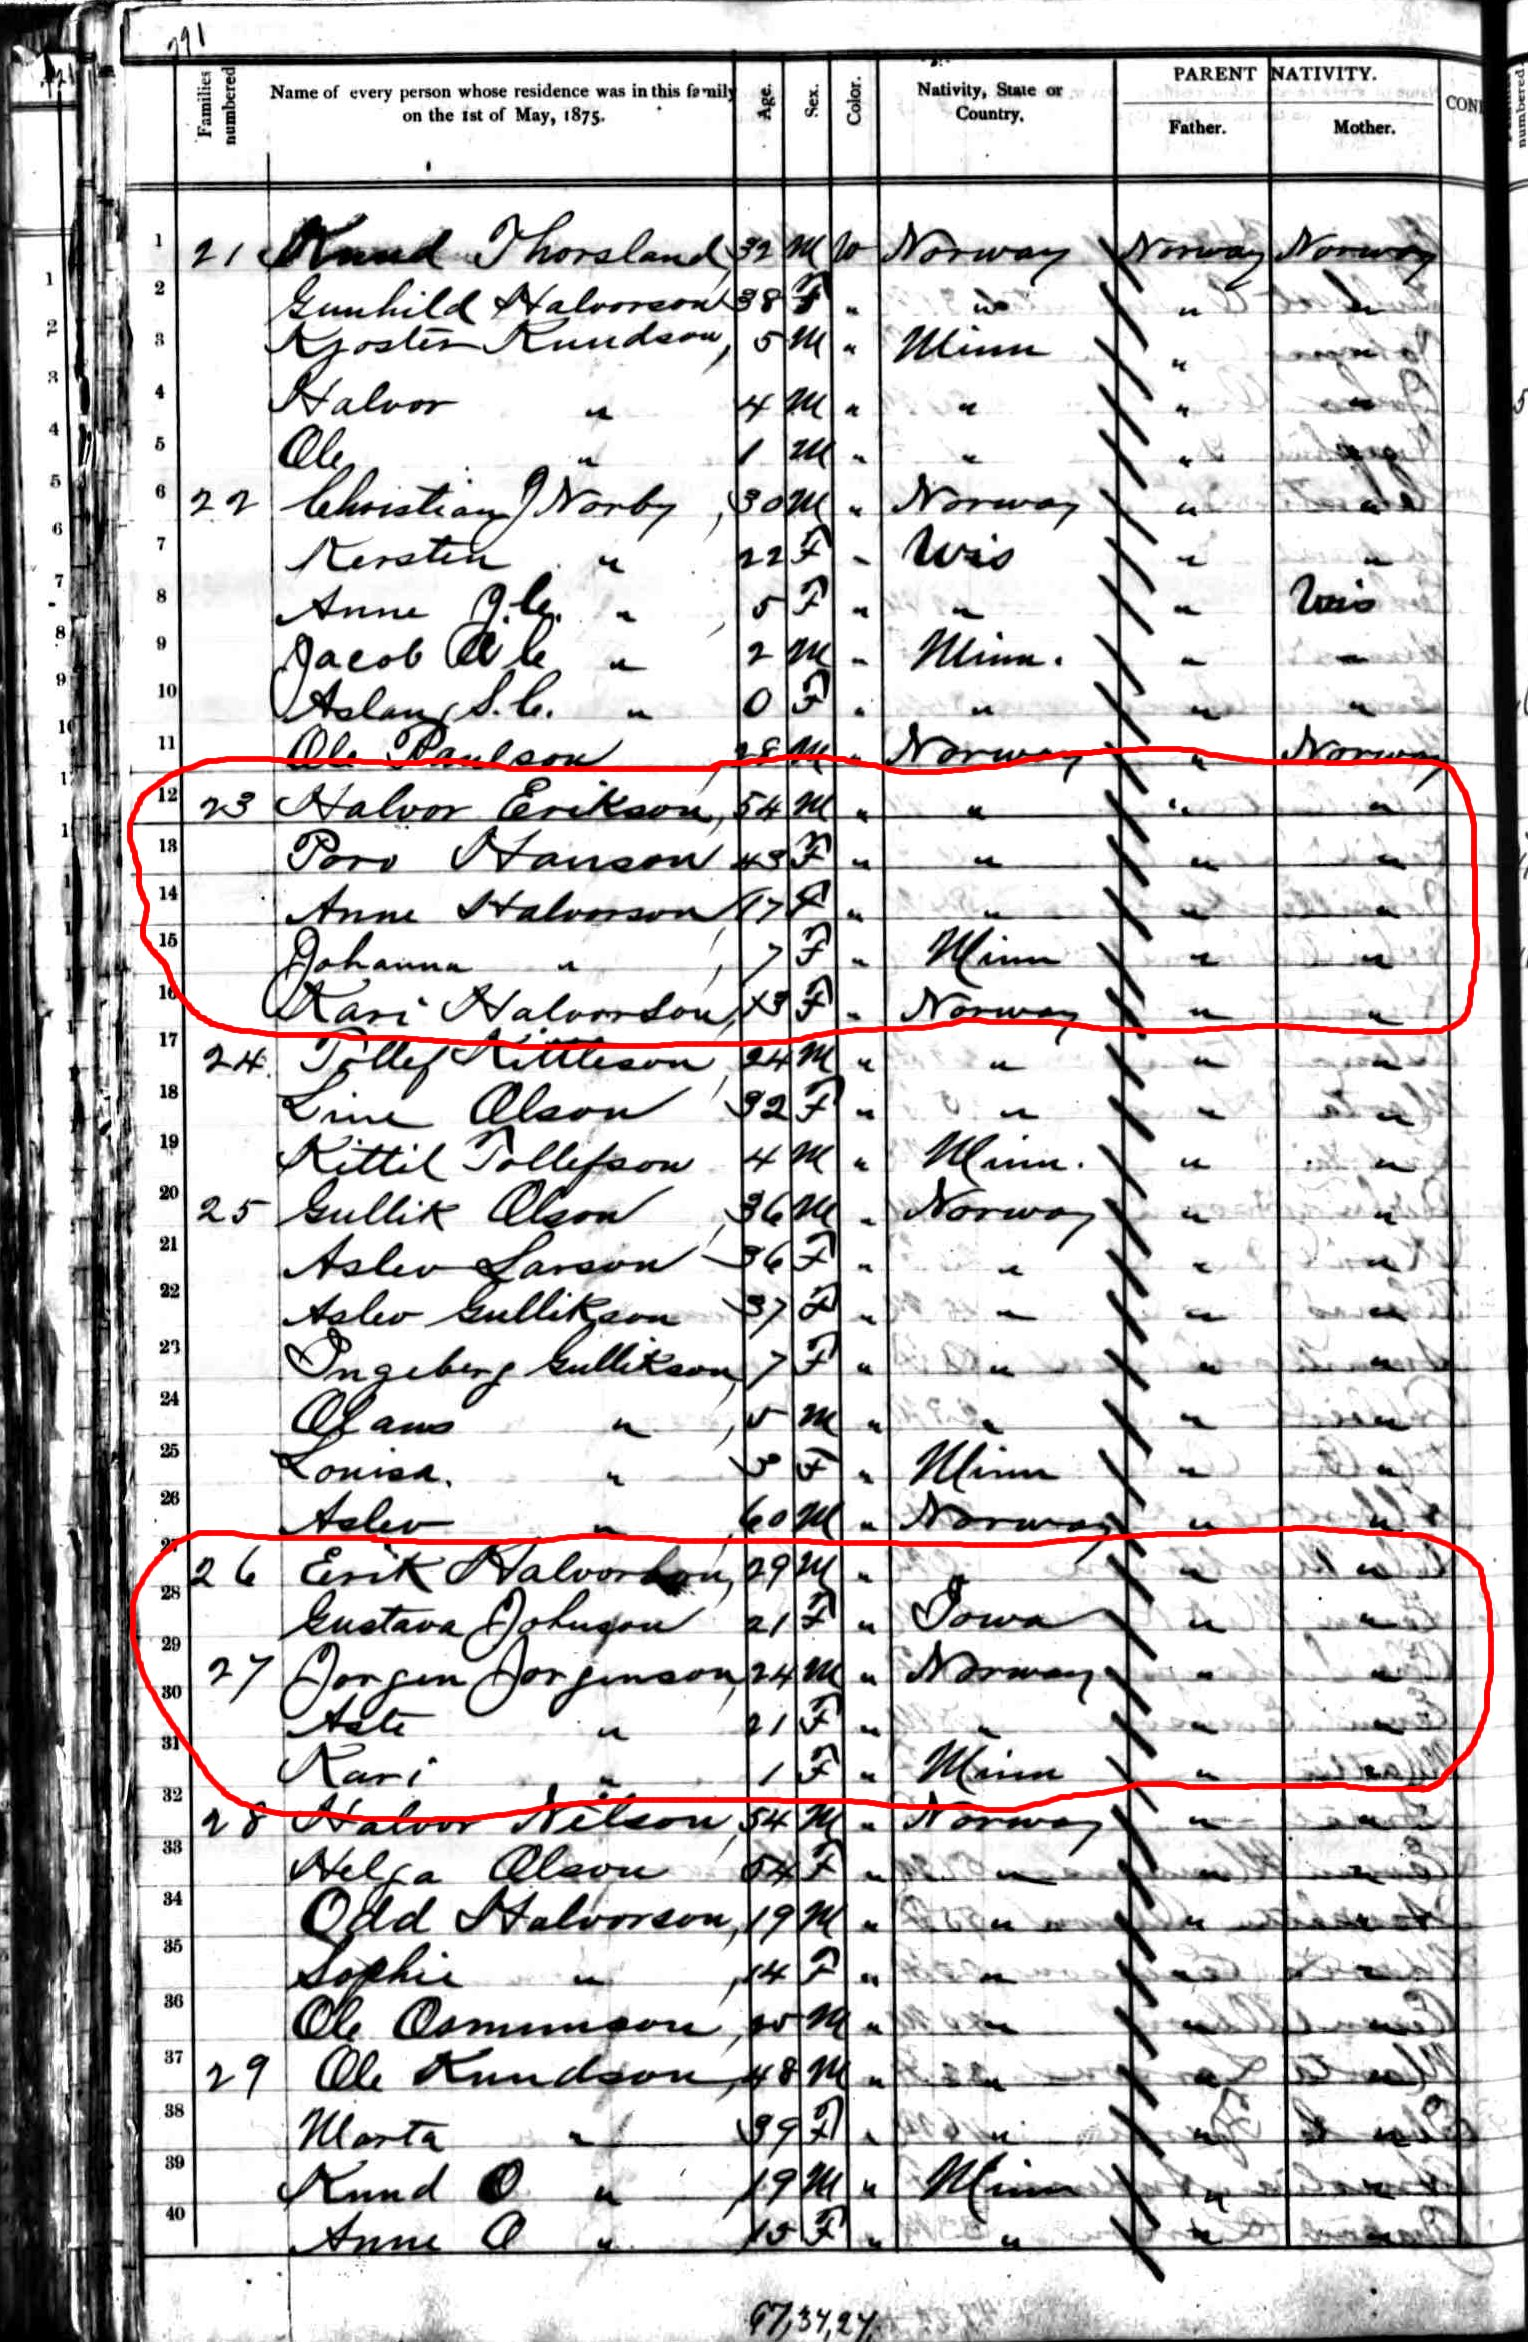 Sarah Wilson was the married daughter of Robert Lord, an ancestor of Nathaniel's maternal grandmother Miriam Lord Manning. Sarah Phelps was the great-niece of Henry Phelps, Nathaniel's maternal great-great grandfather.